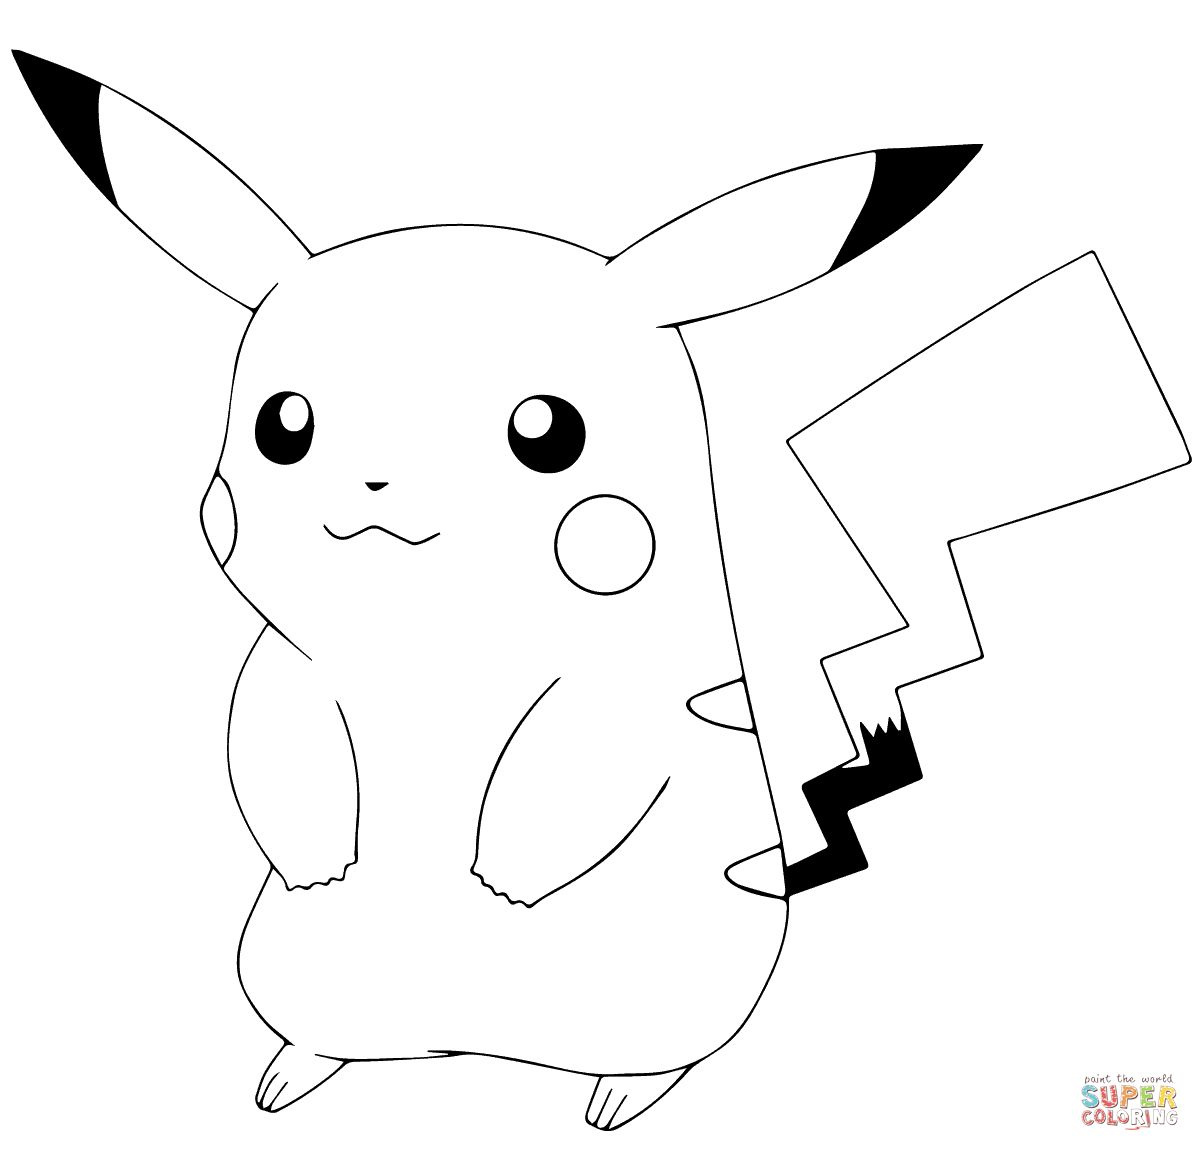 1200x1151 Pokemon Go Pikachu Coloring Page In Pikachu Coloring Page